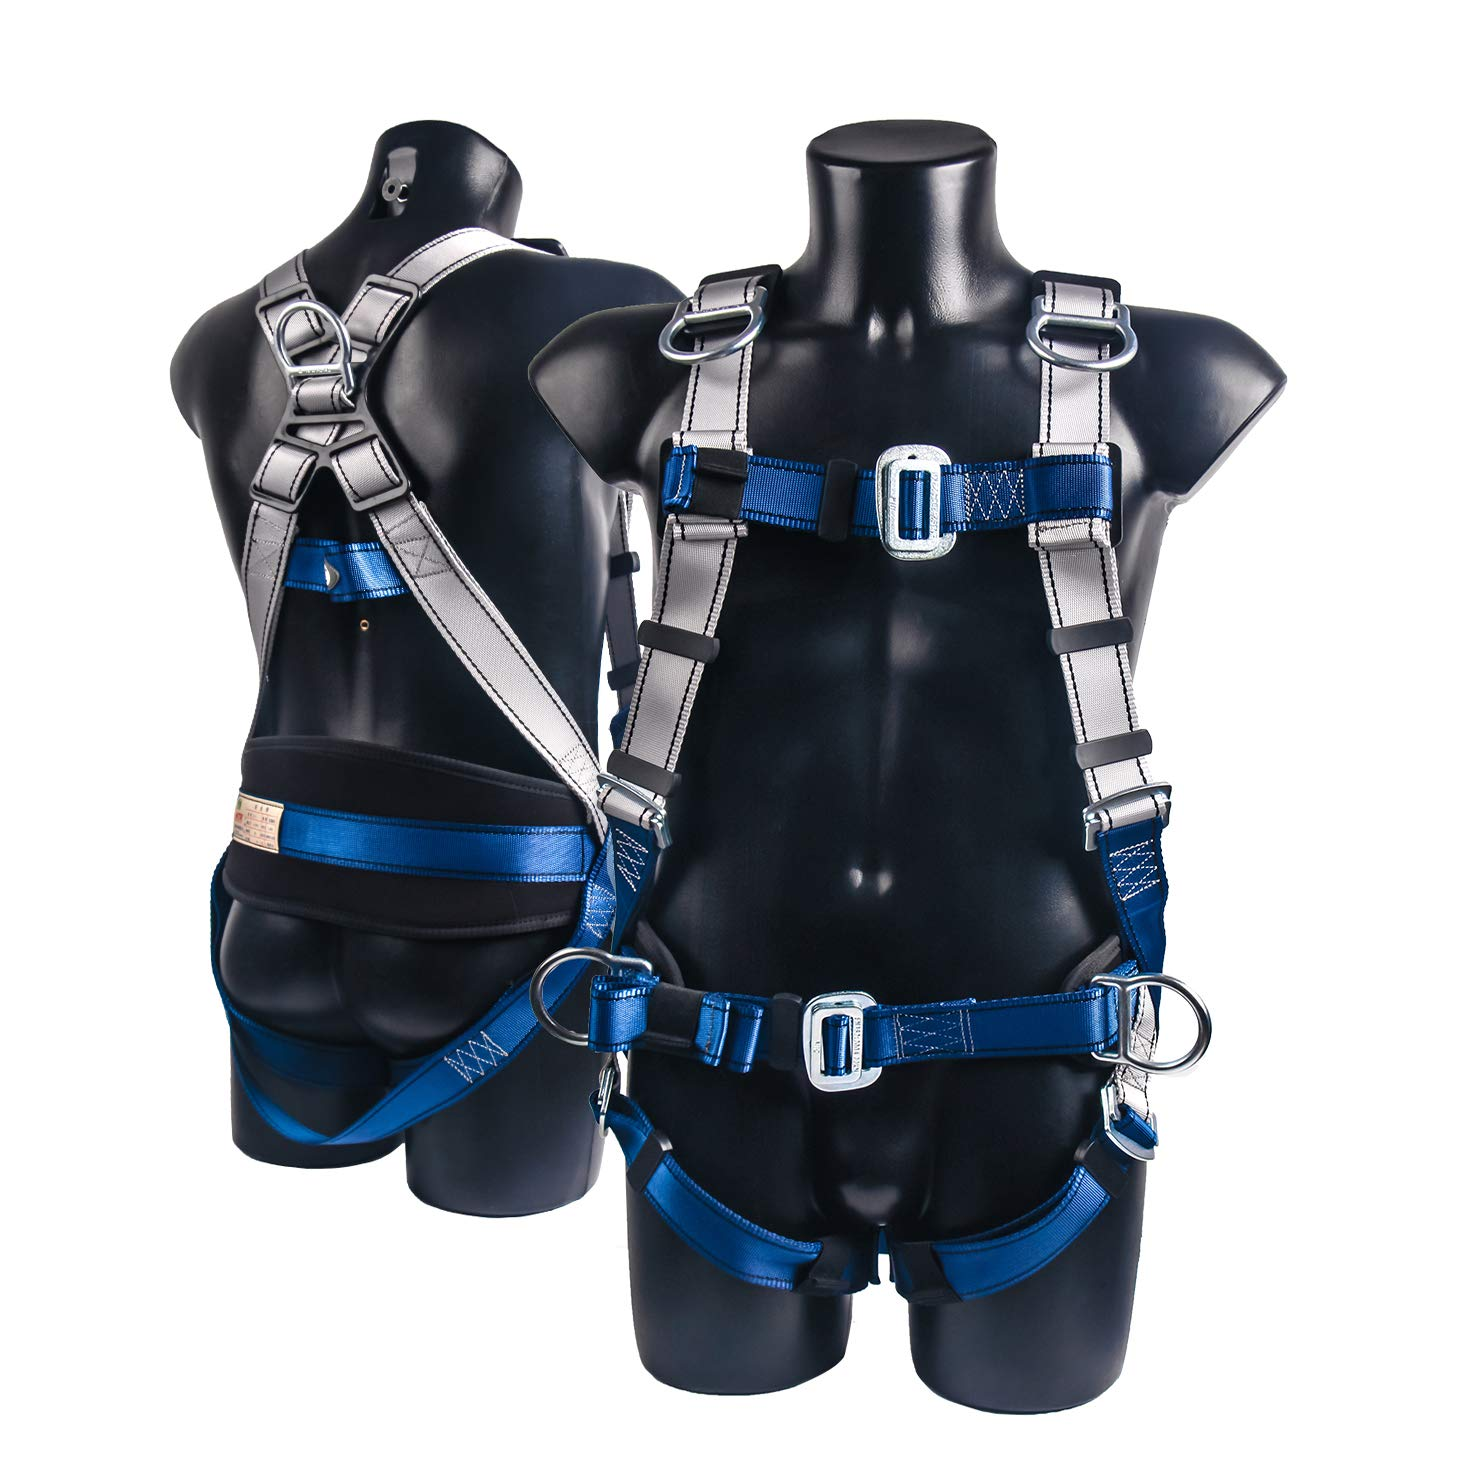 JINGYAT 5 D-Ring Full Body Safety Harness Fall Protection,Universal Personal Protective Equipment (130-310 pound),Construction Industrial Tower Roofing Tool by JINGYAT